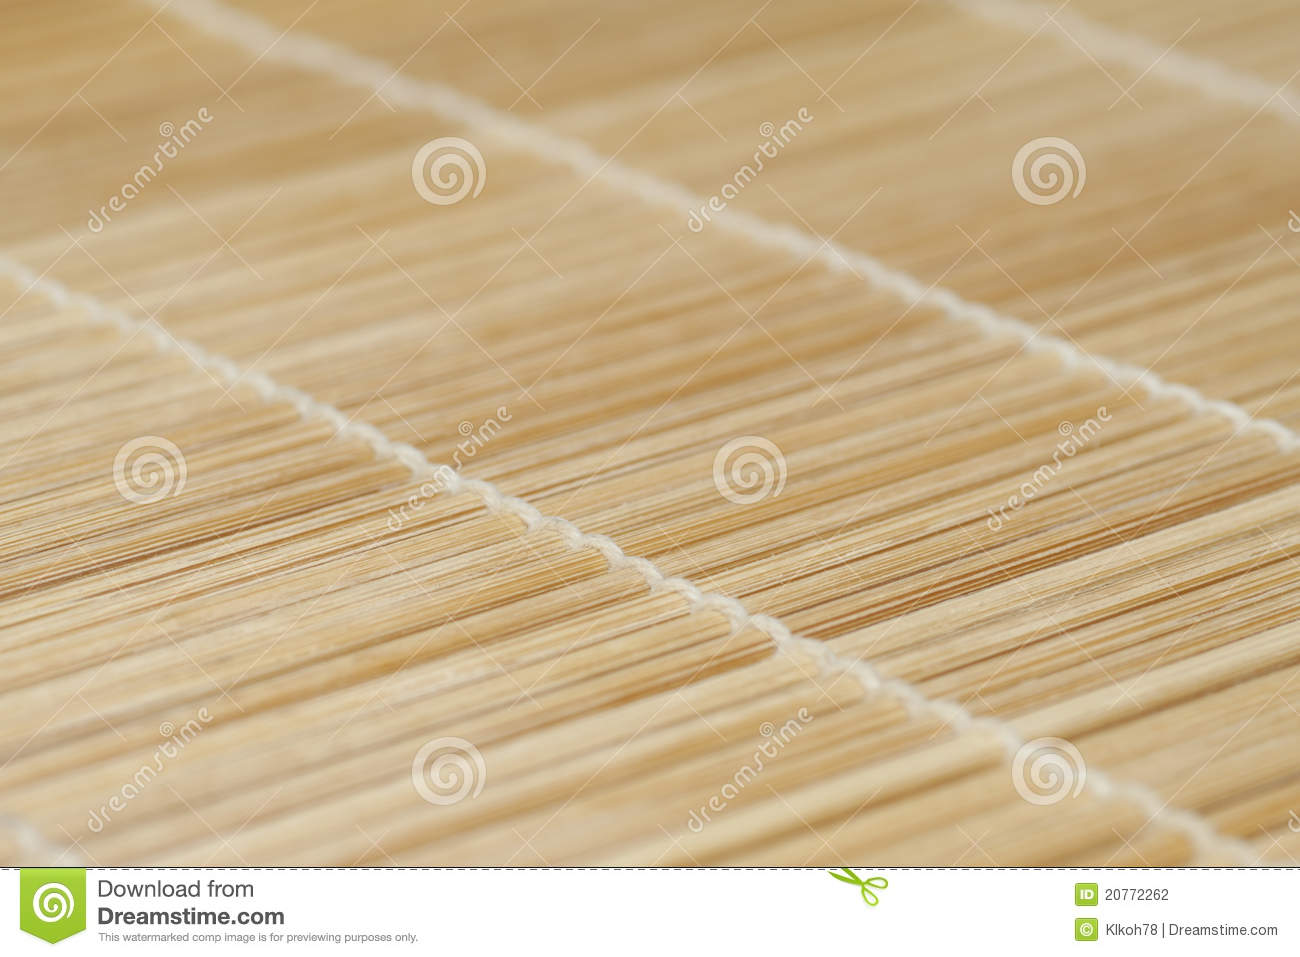 Bamboo Sticks Tied With Strings Stock Photography Image